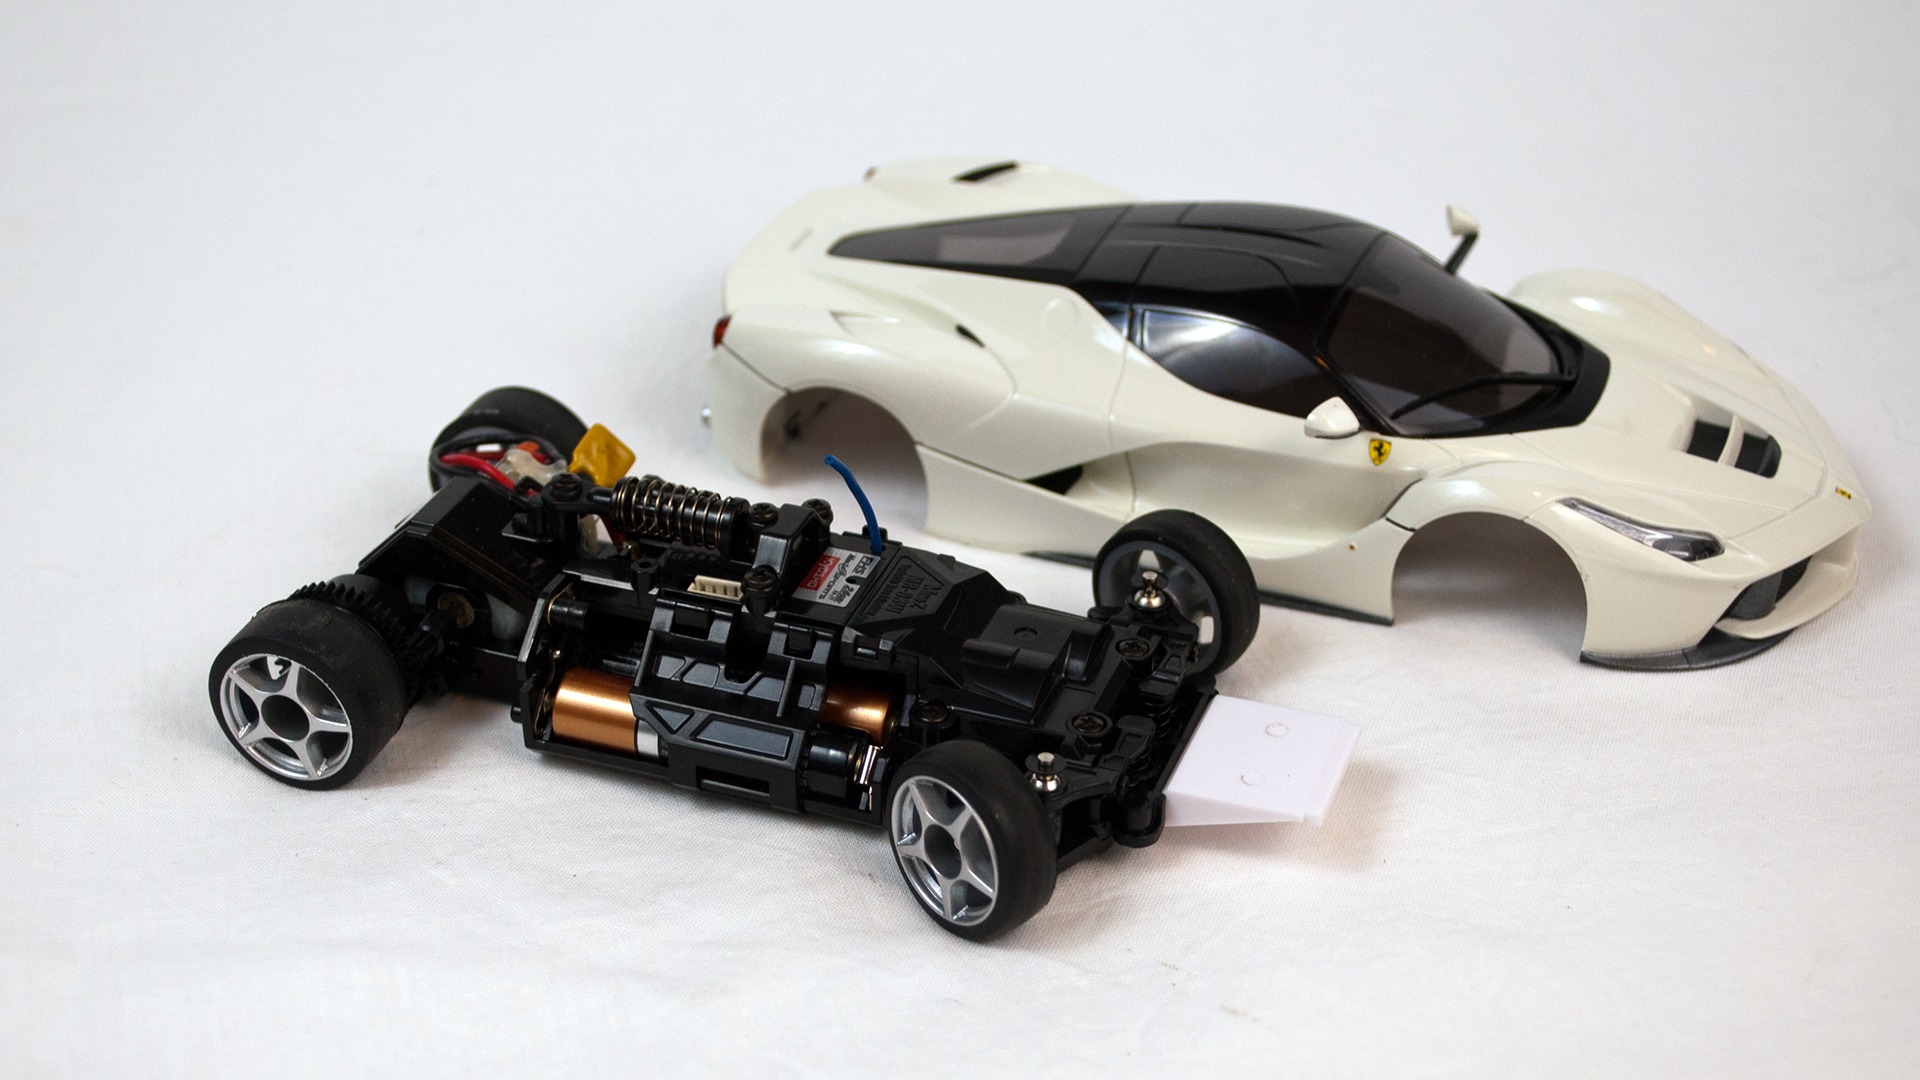 How To Get Into Hobby RC Tested - Fast car plucking